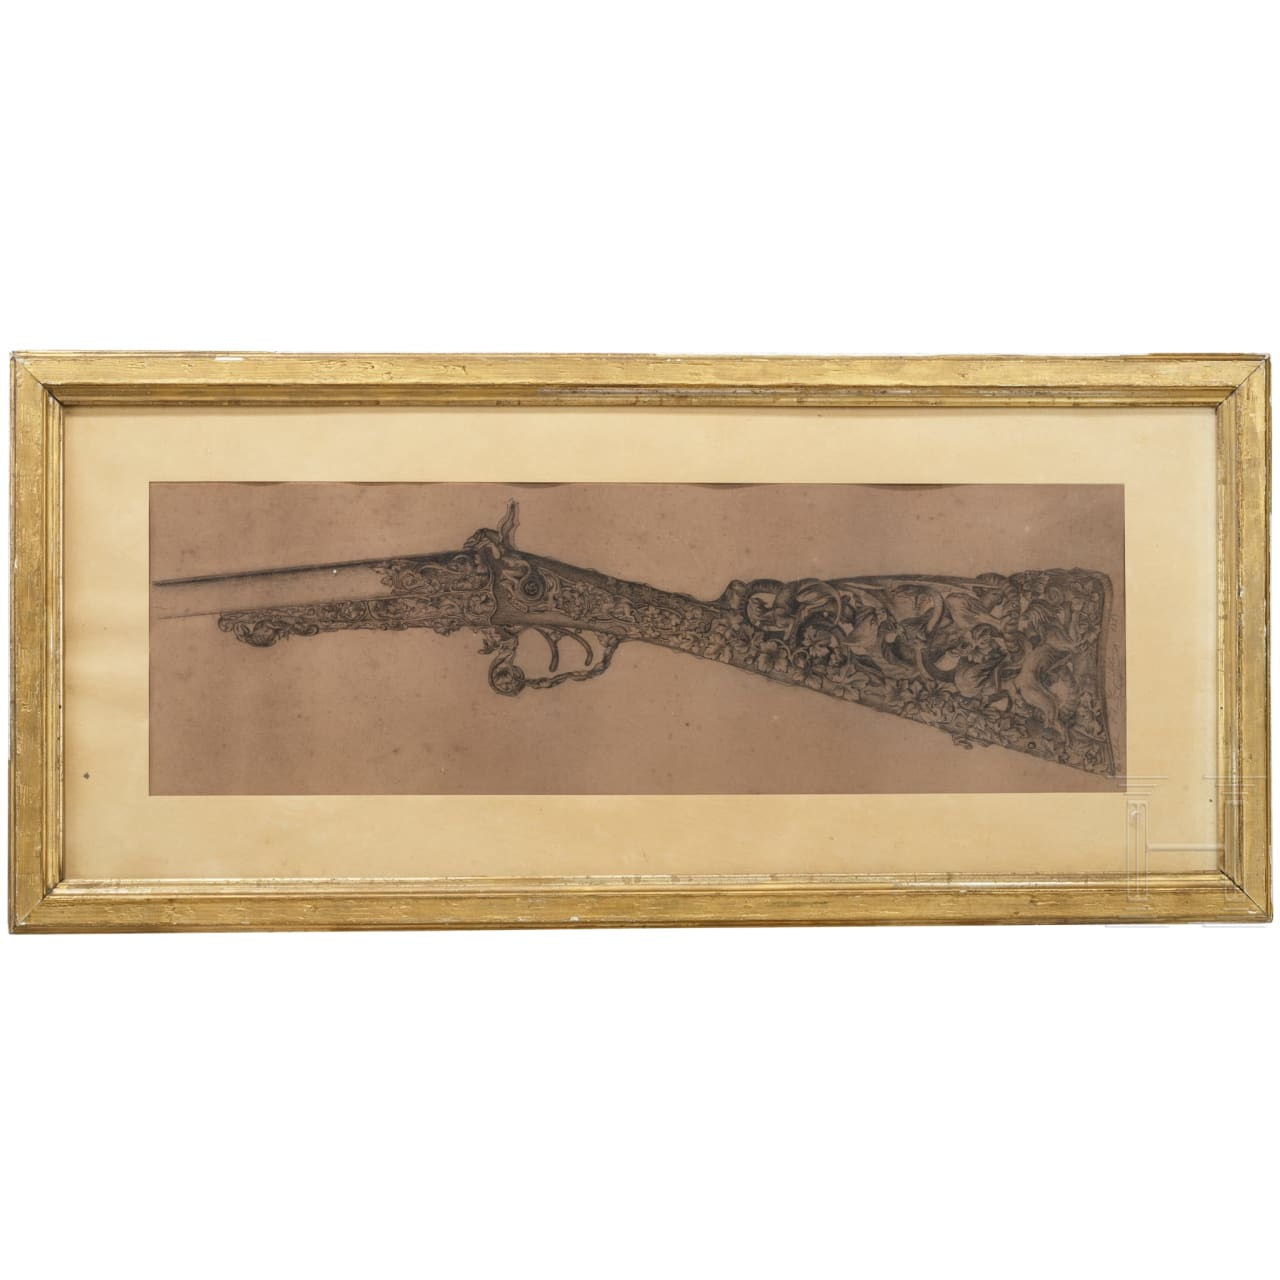 Ferdinand Claudin, a sketch for a luxury gunstock, Paris, dated 1885